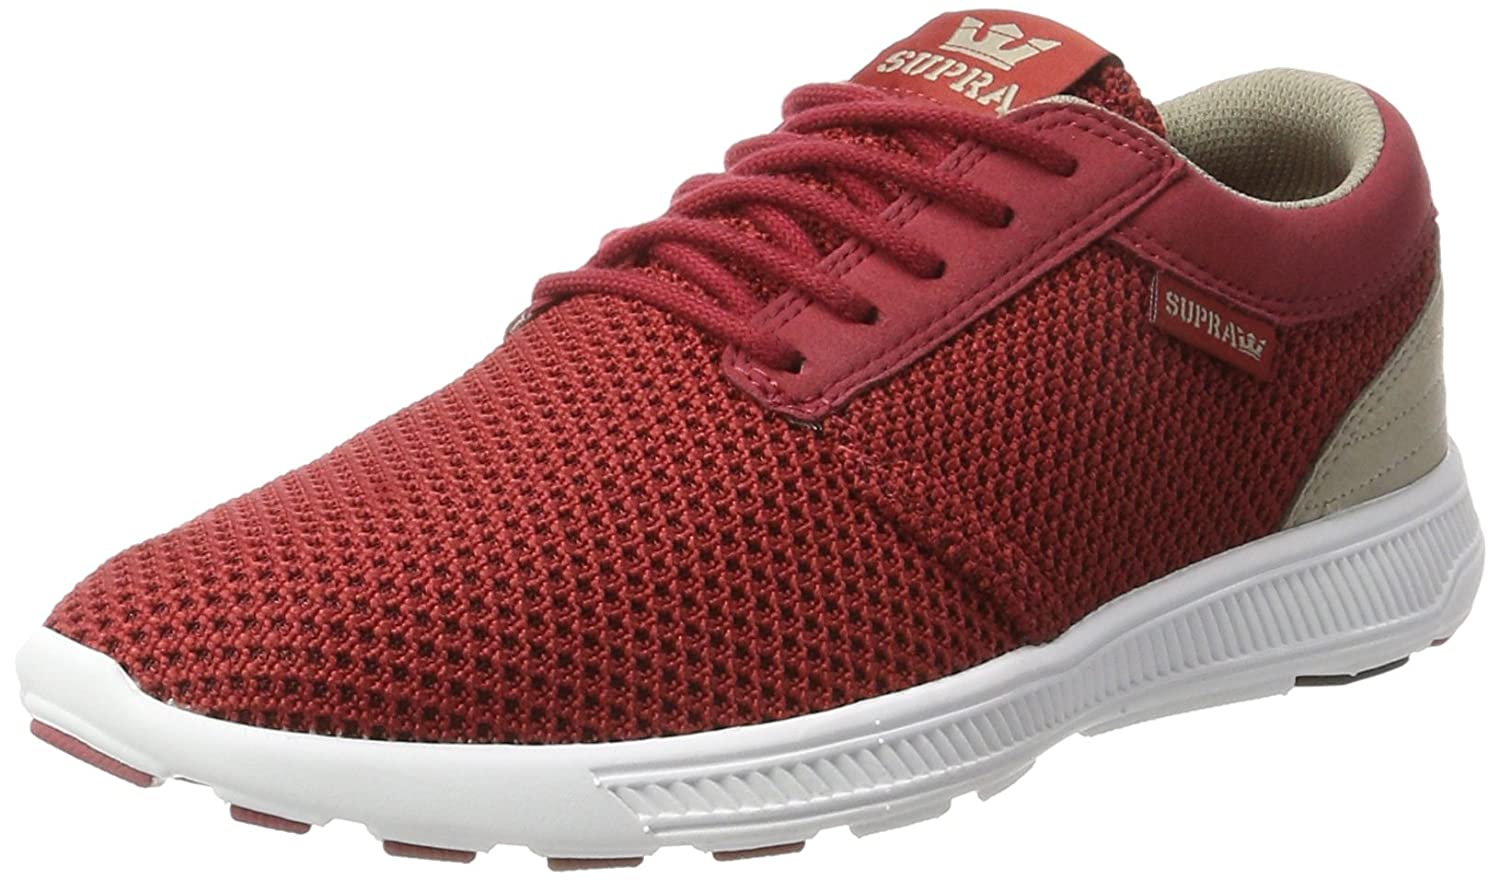 Supra Men's Hammer Run Skate Shoe B073H9J8K6 10.5 M US|Brick Red/White